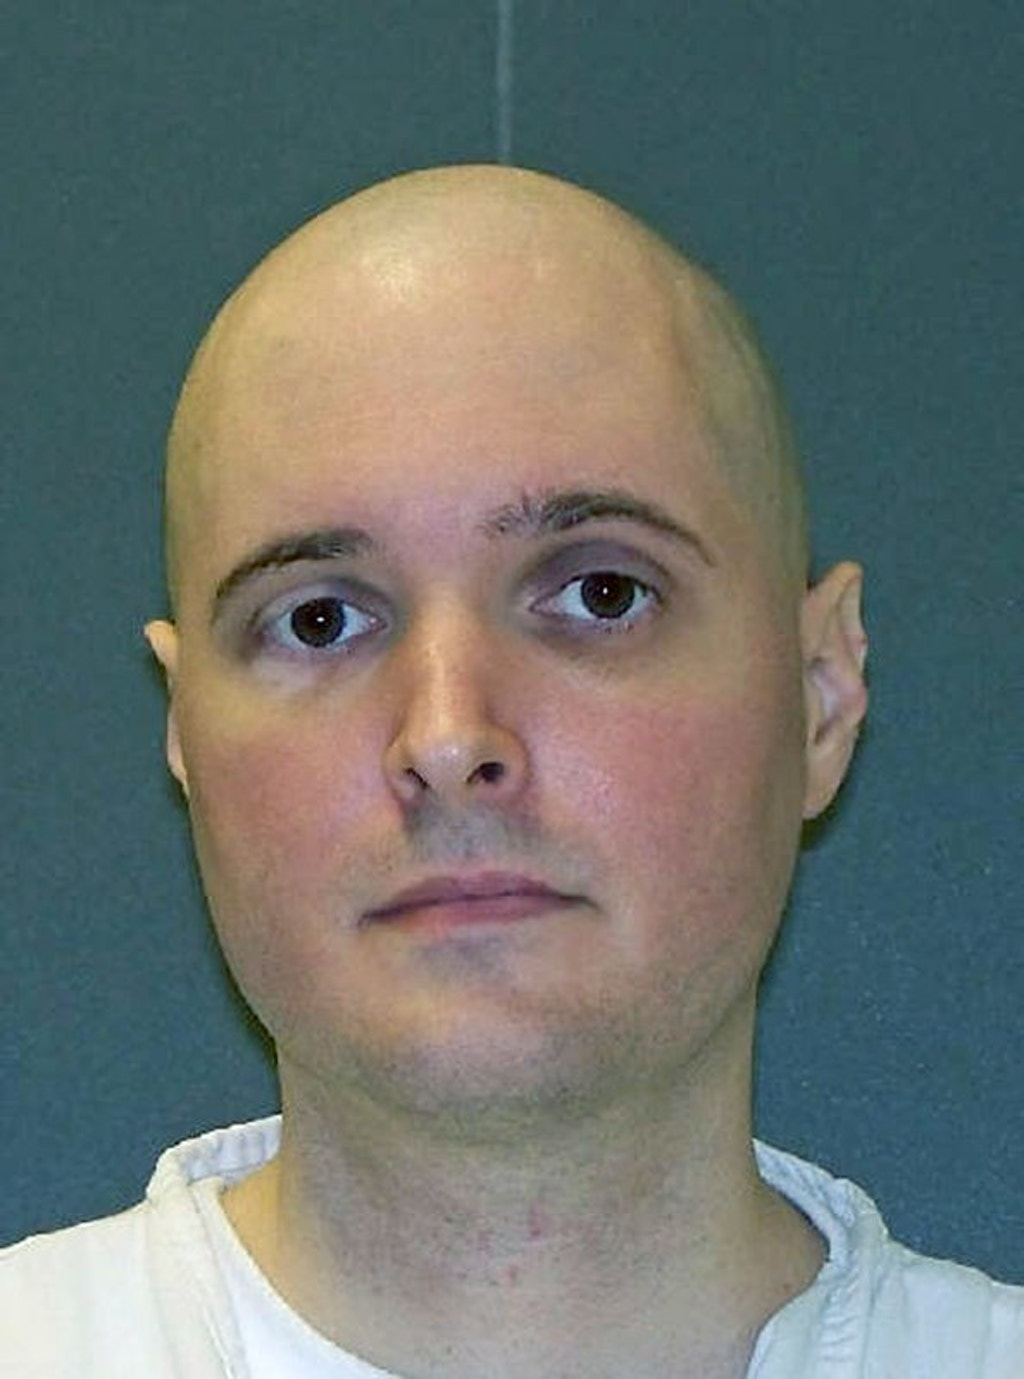 Father Who Survived Shooting Asks Texas Not to Execute His Son